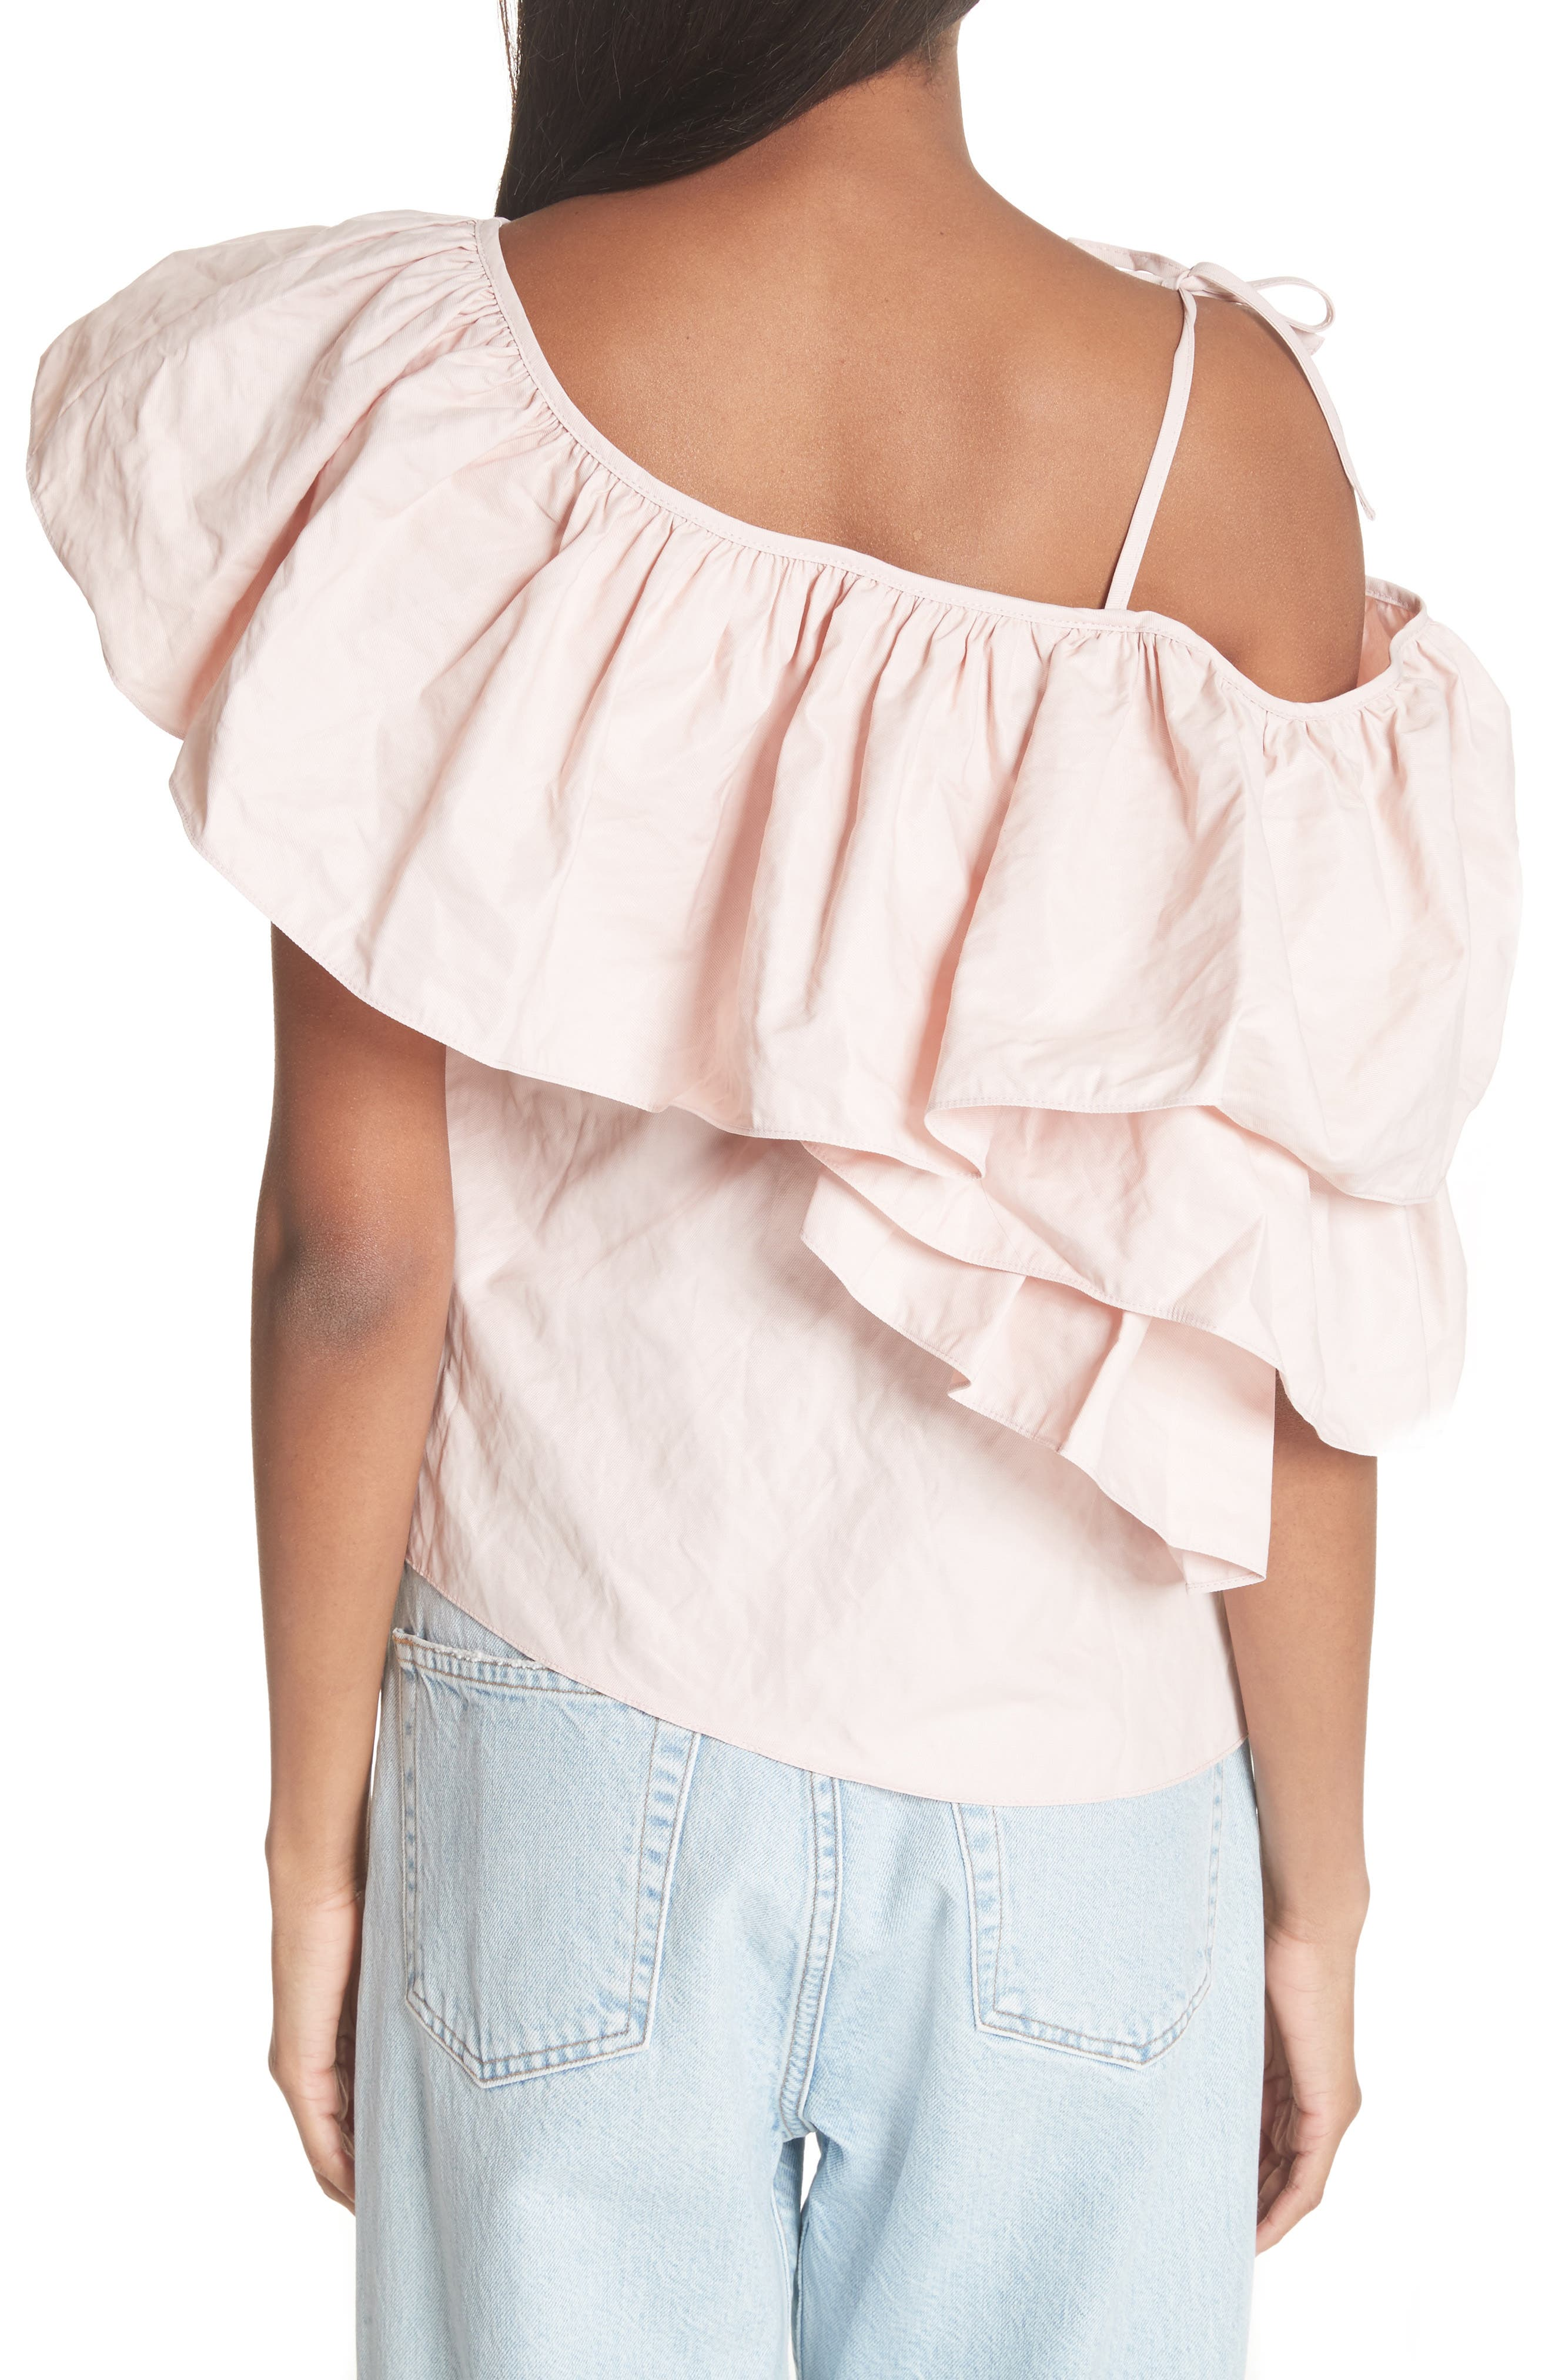 Marques'Almeida One Shoulder Ruffle Top,                             Alternate thumbnail 2, color,                             Pale Pink